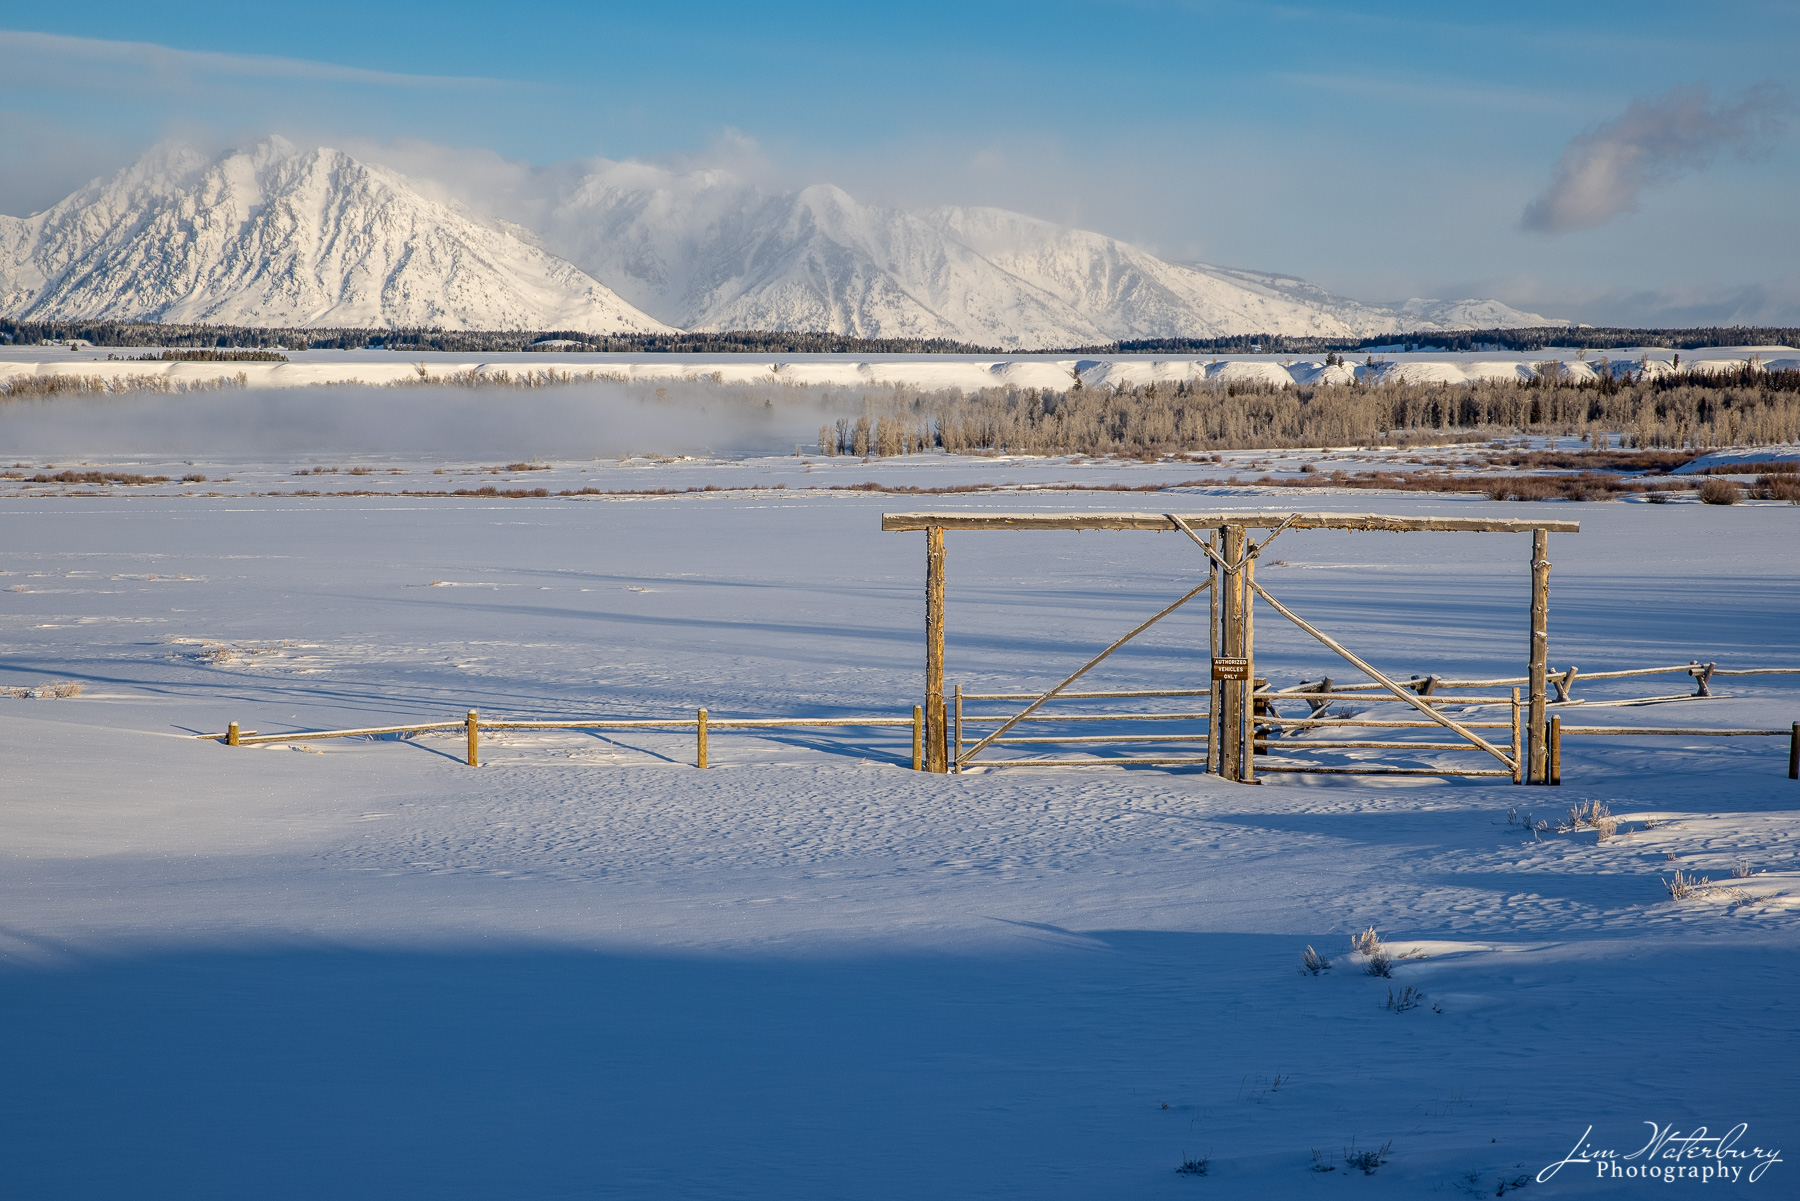 Entrance to the grazing meadows (now covered in snow) of the Triangle X Ranch in Grand Teton National Park